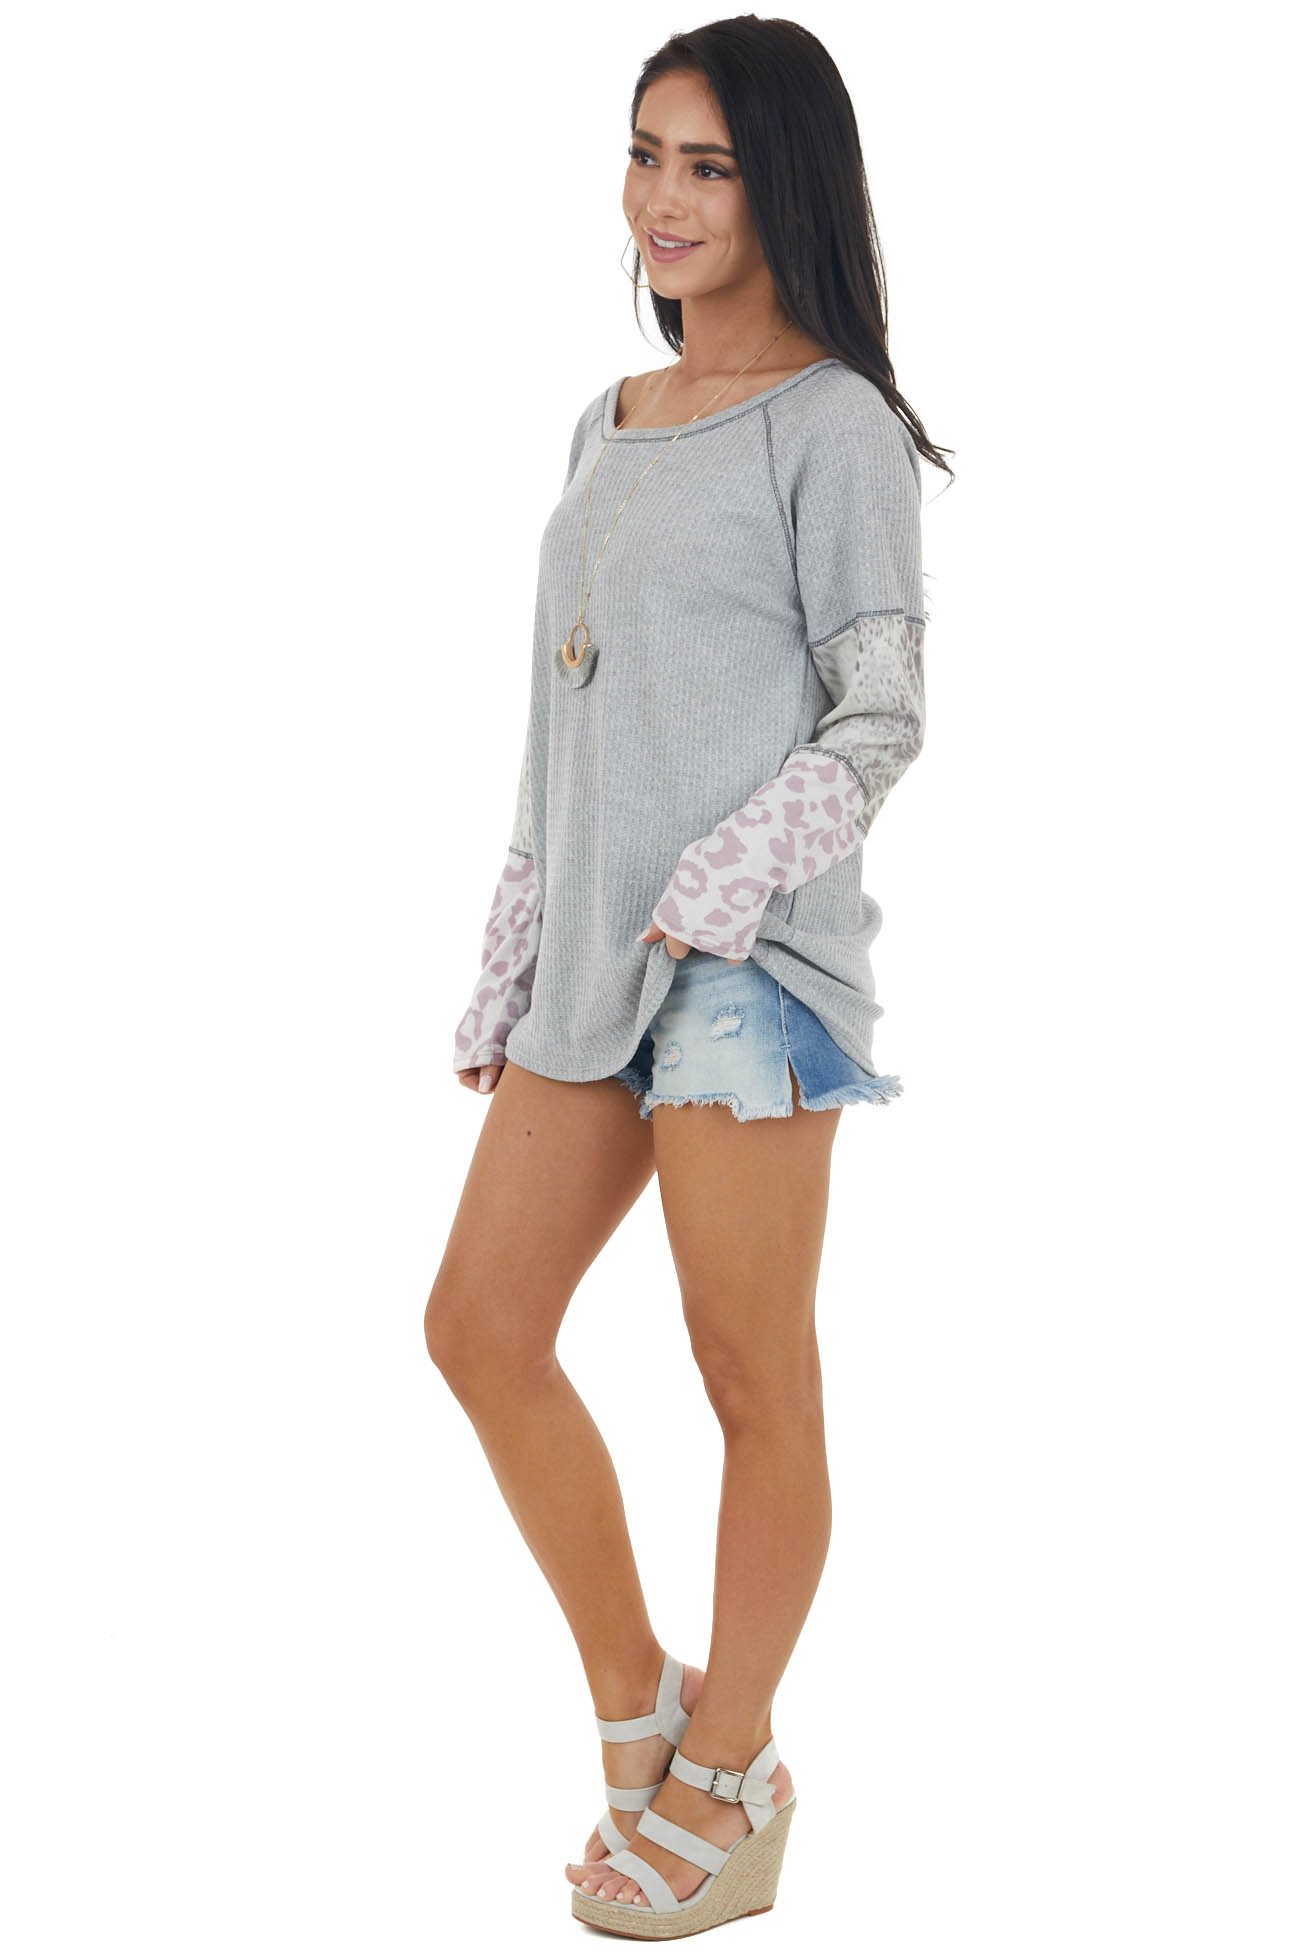 Dove Grey Waffle Knit Top with Leopard Print Colorblock